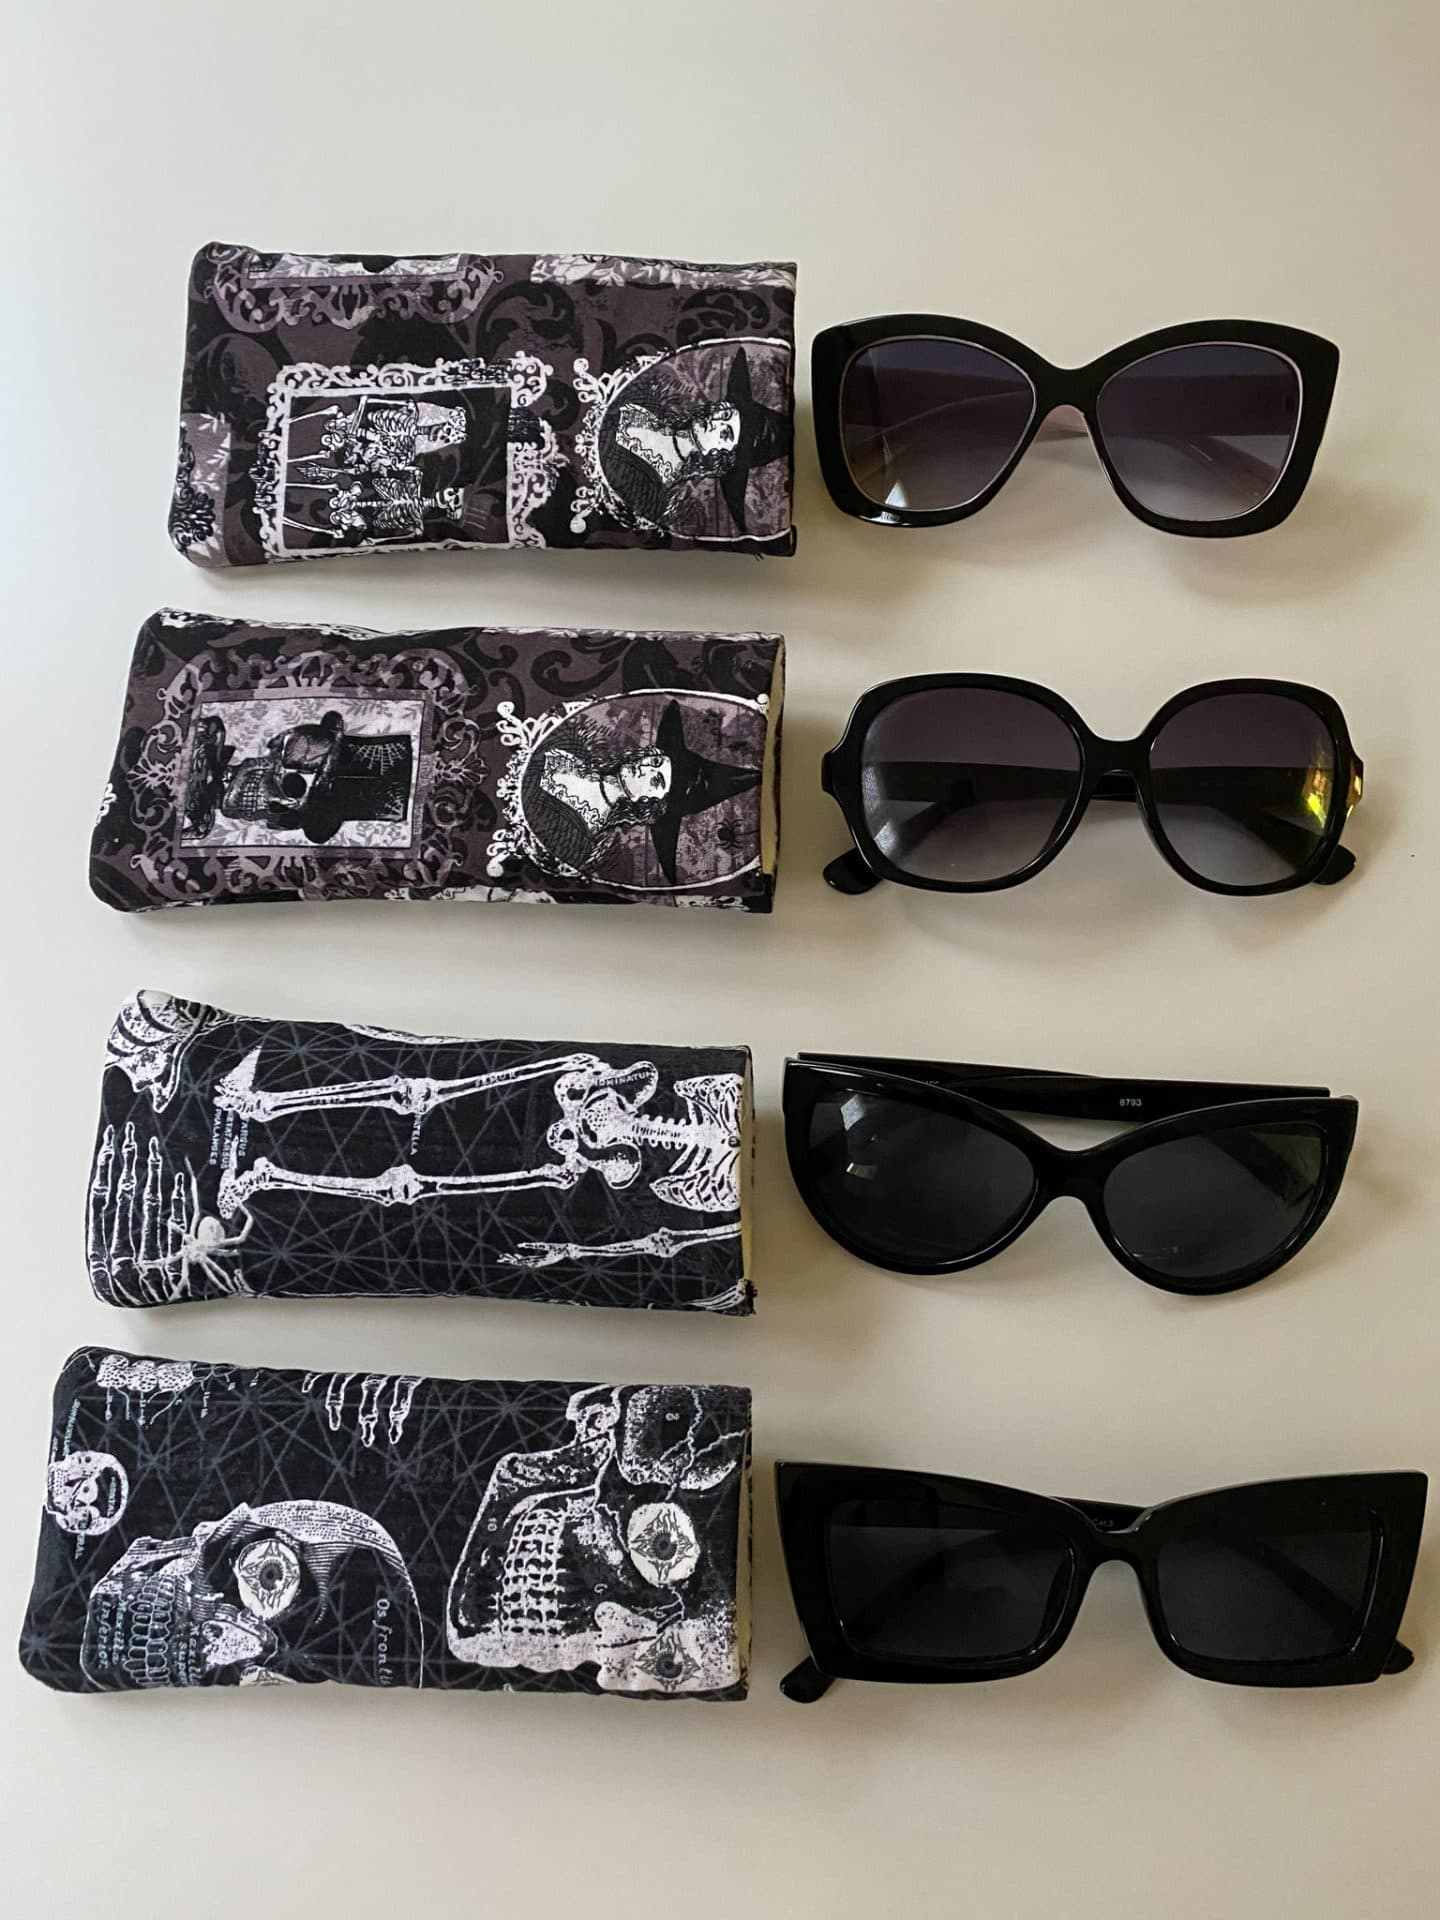 Image of sunglasses lined up on a white surface, each paired up with a case